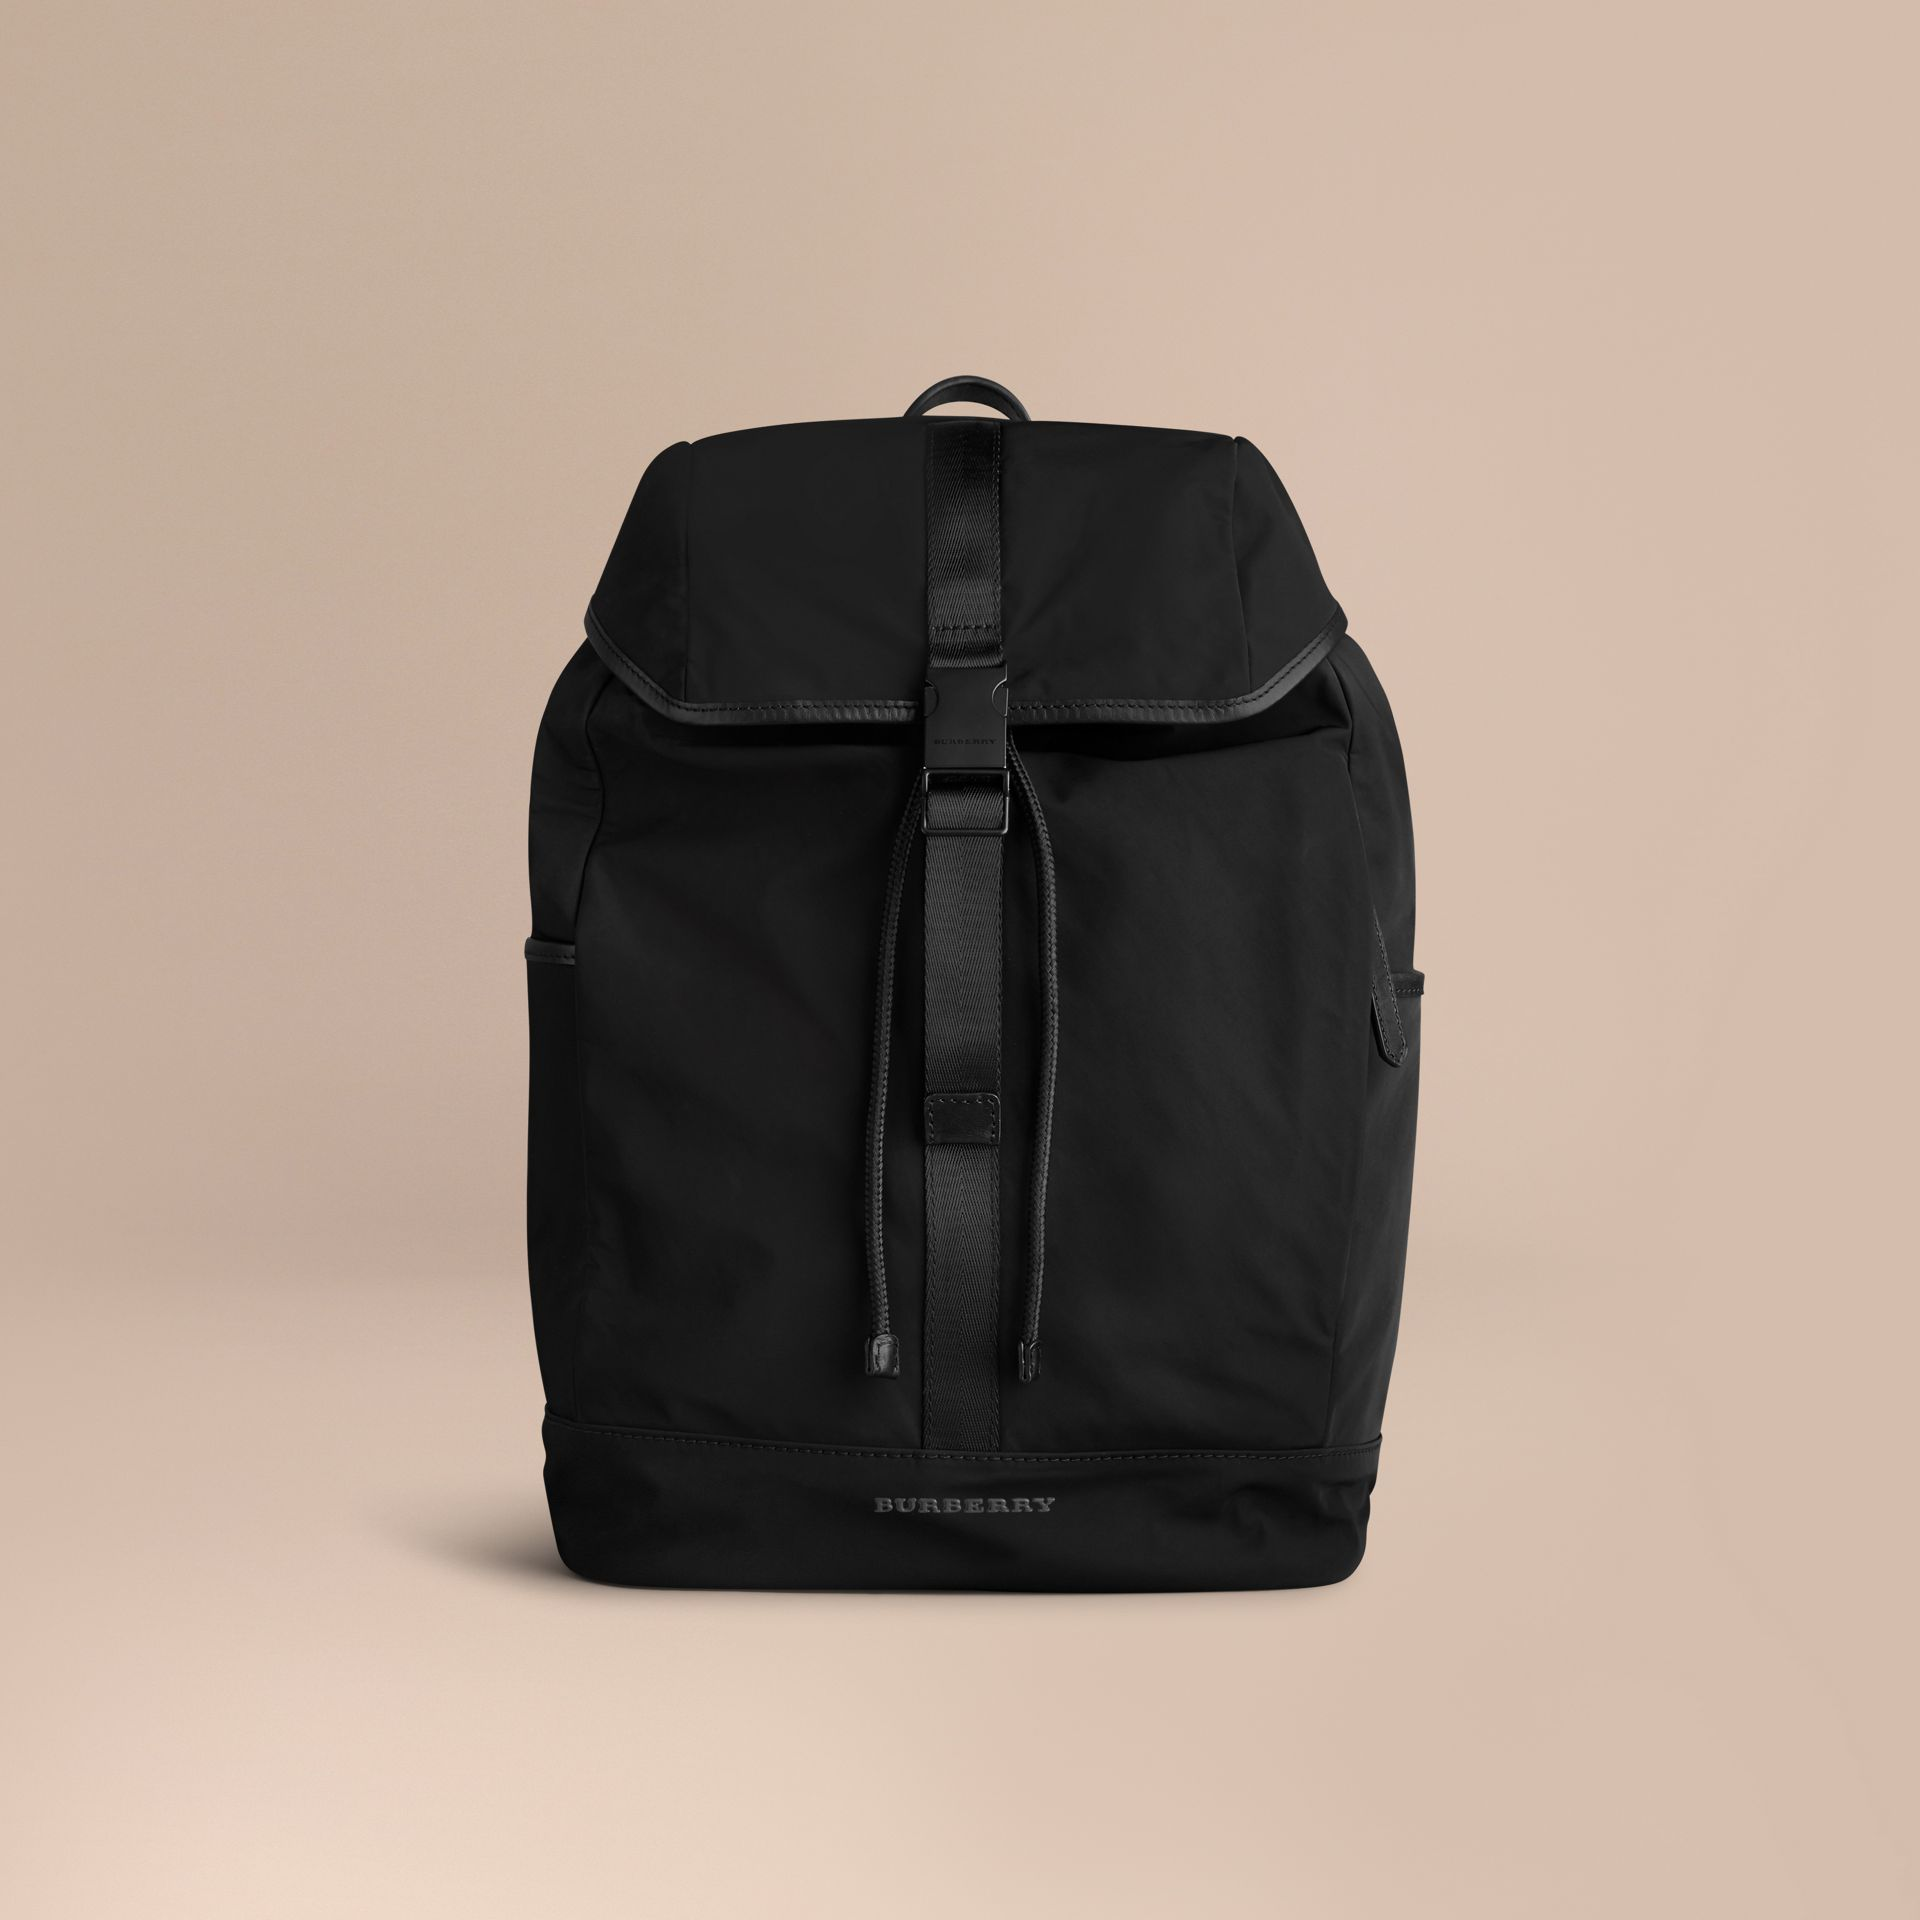 Black Leather Trim Lightweight Backpack Black - gallery image 1